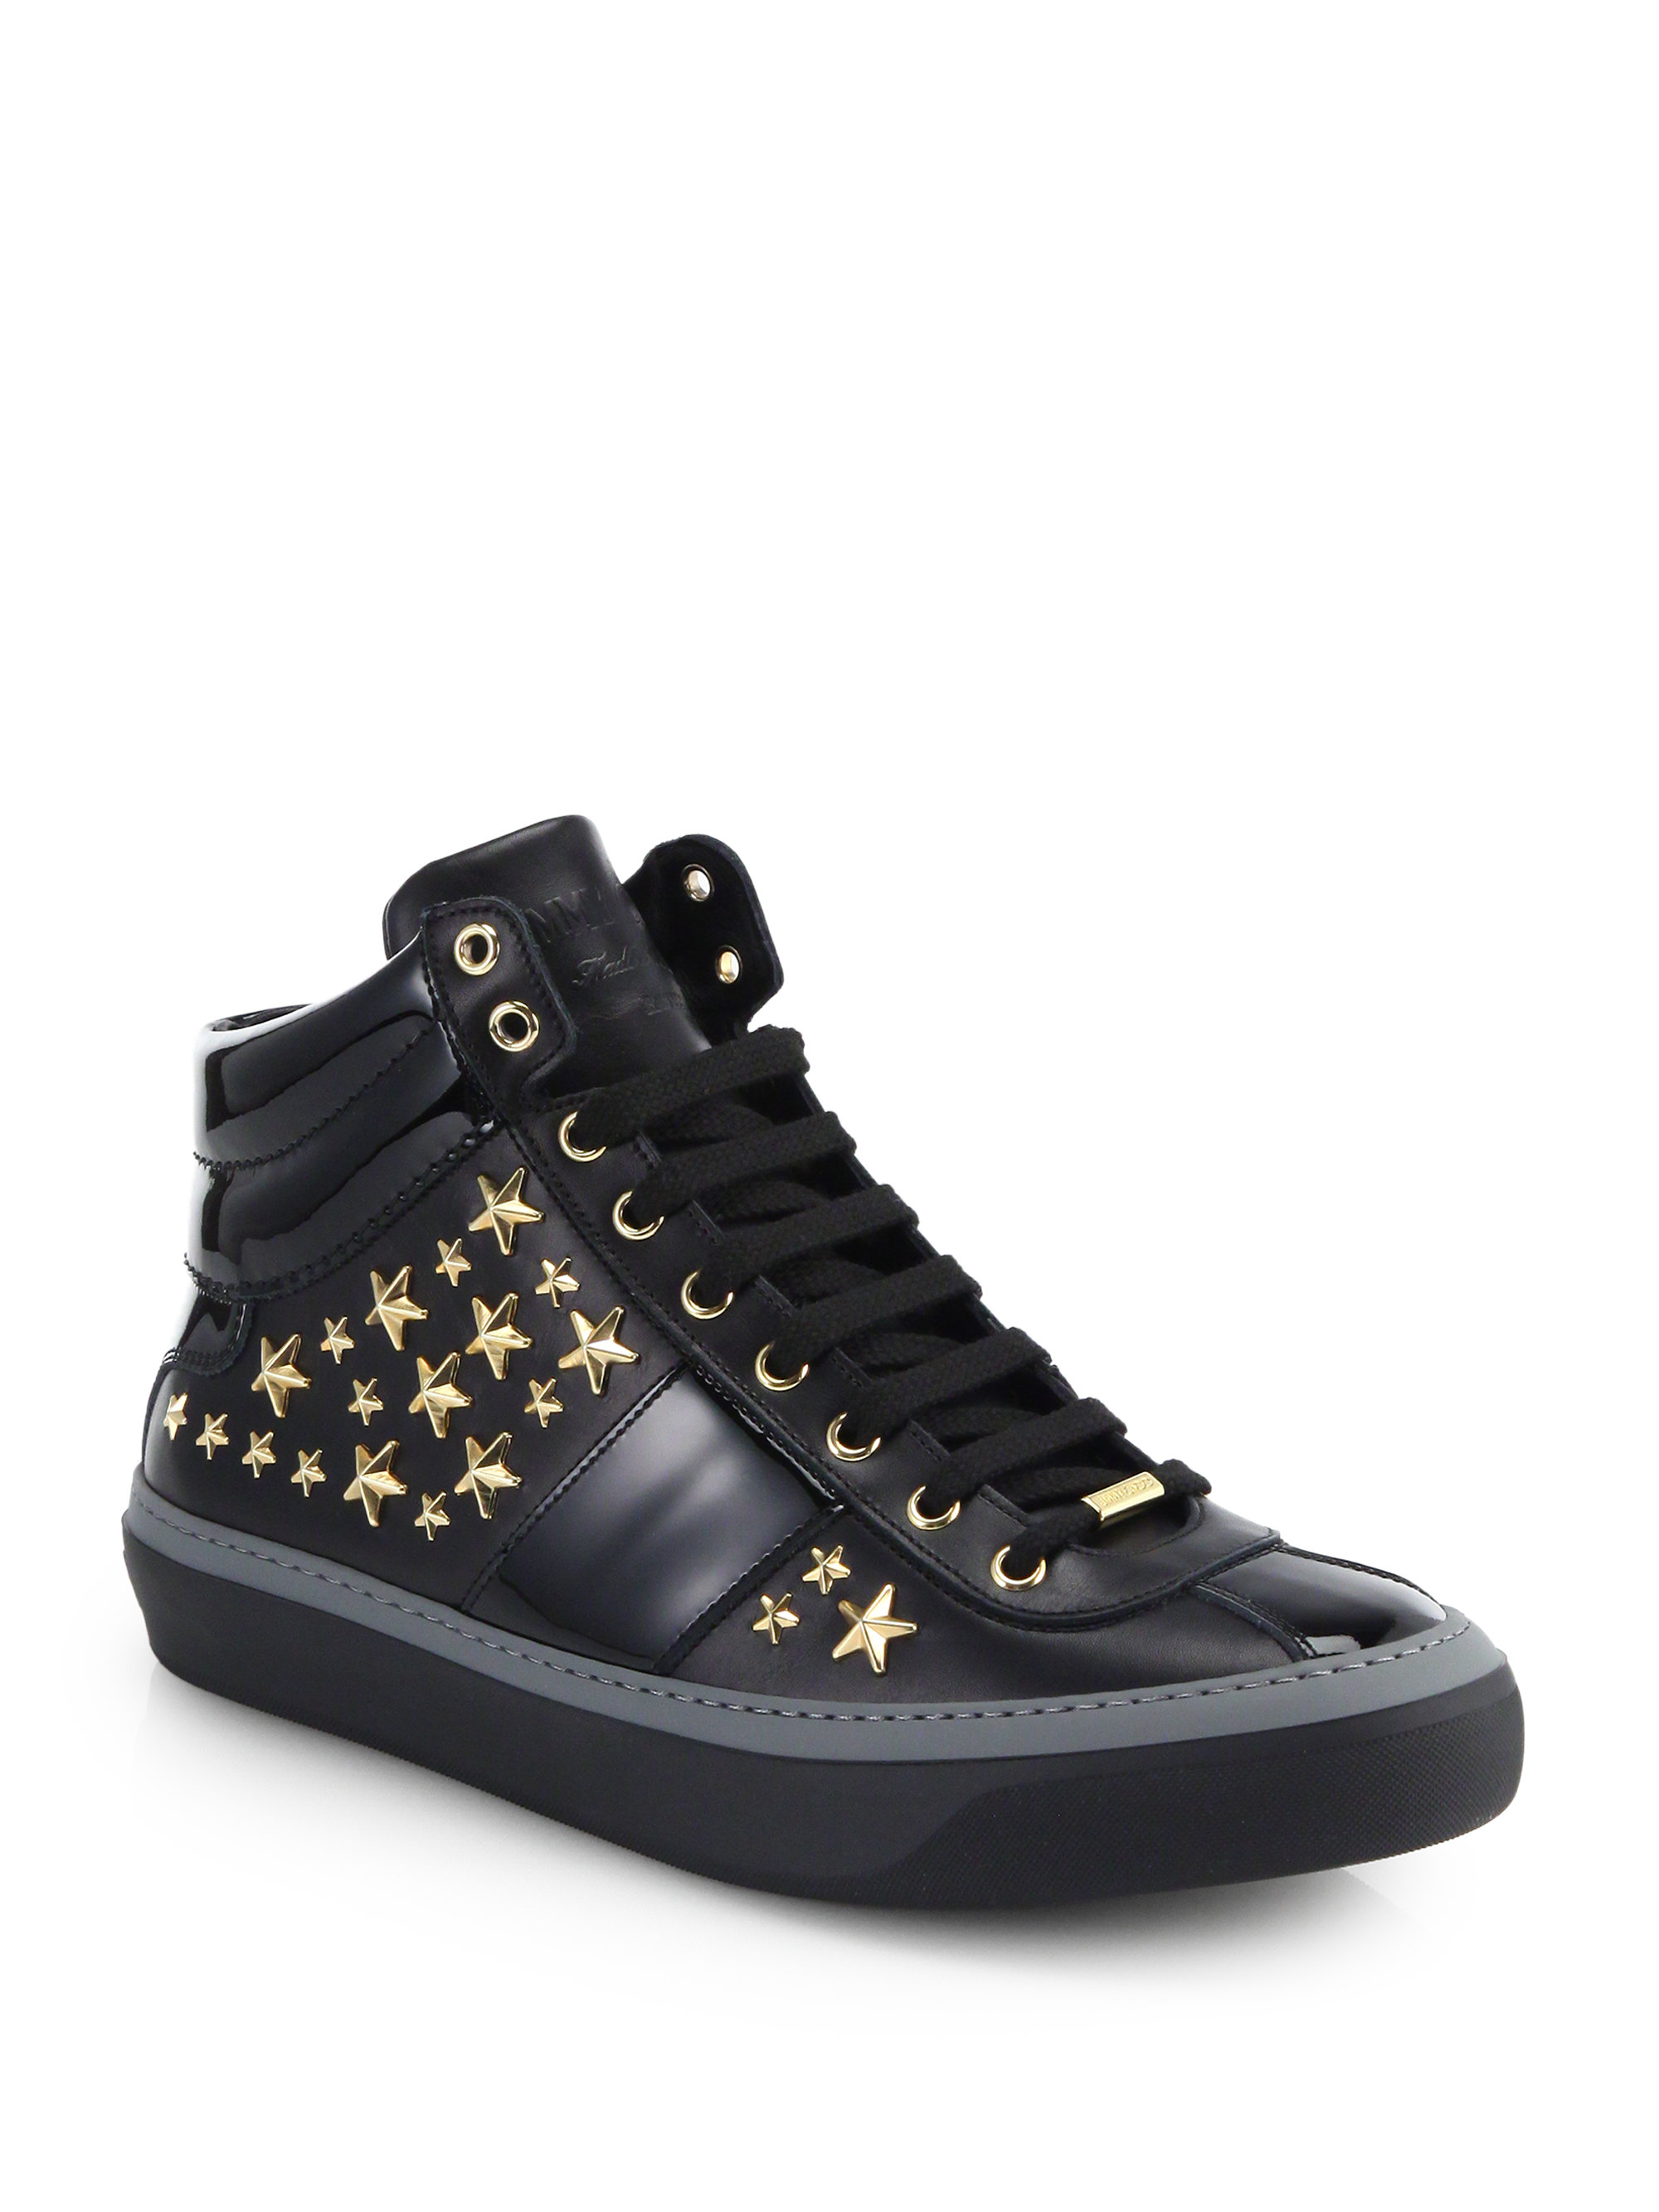 jimmy choo black patent and matte star studded belgrave